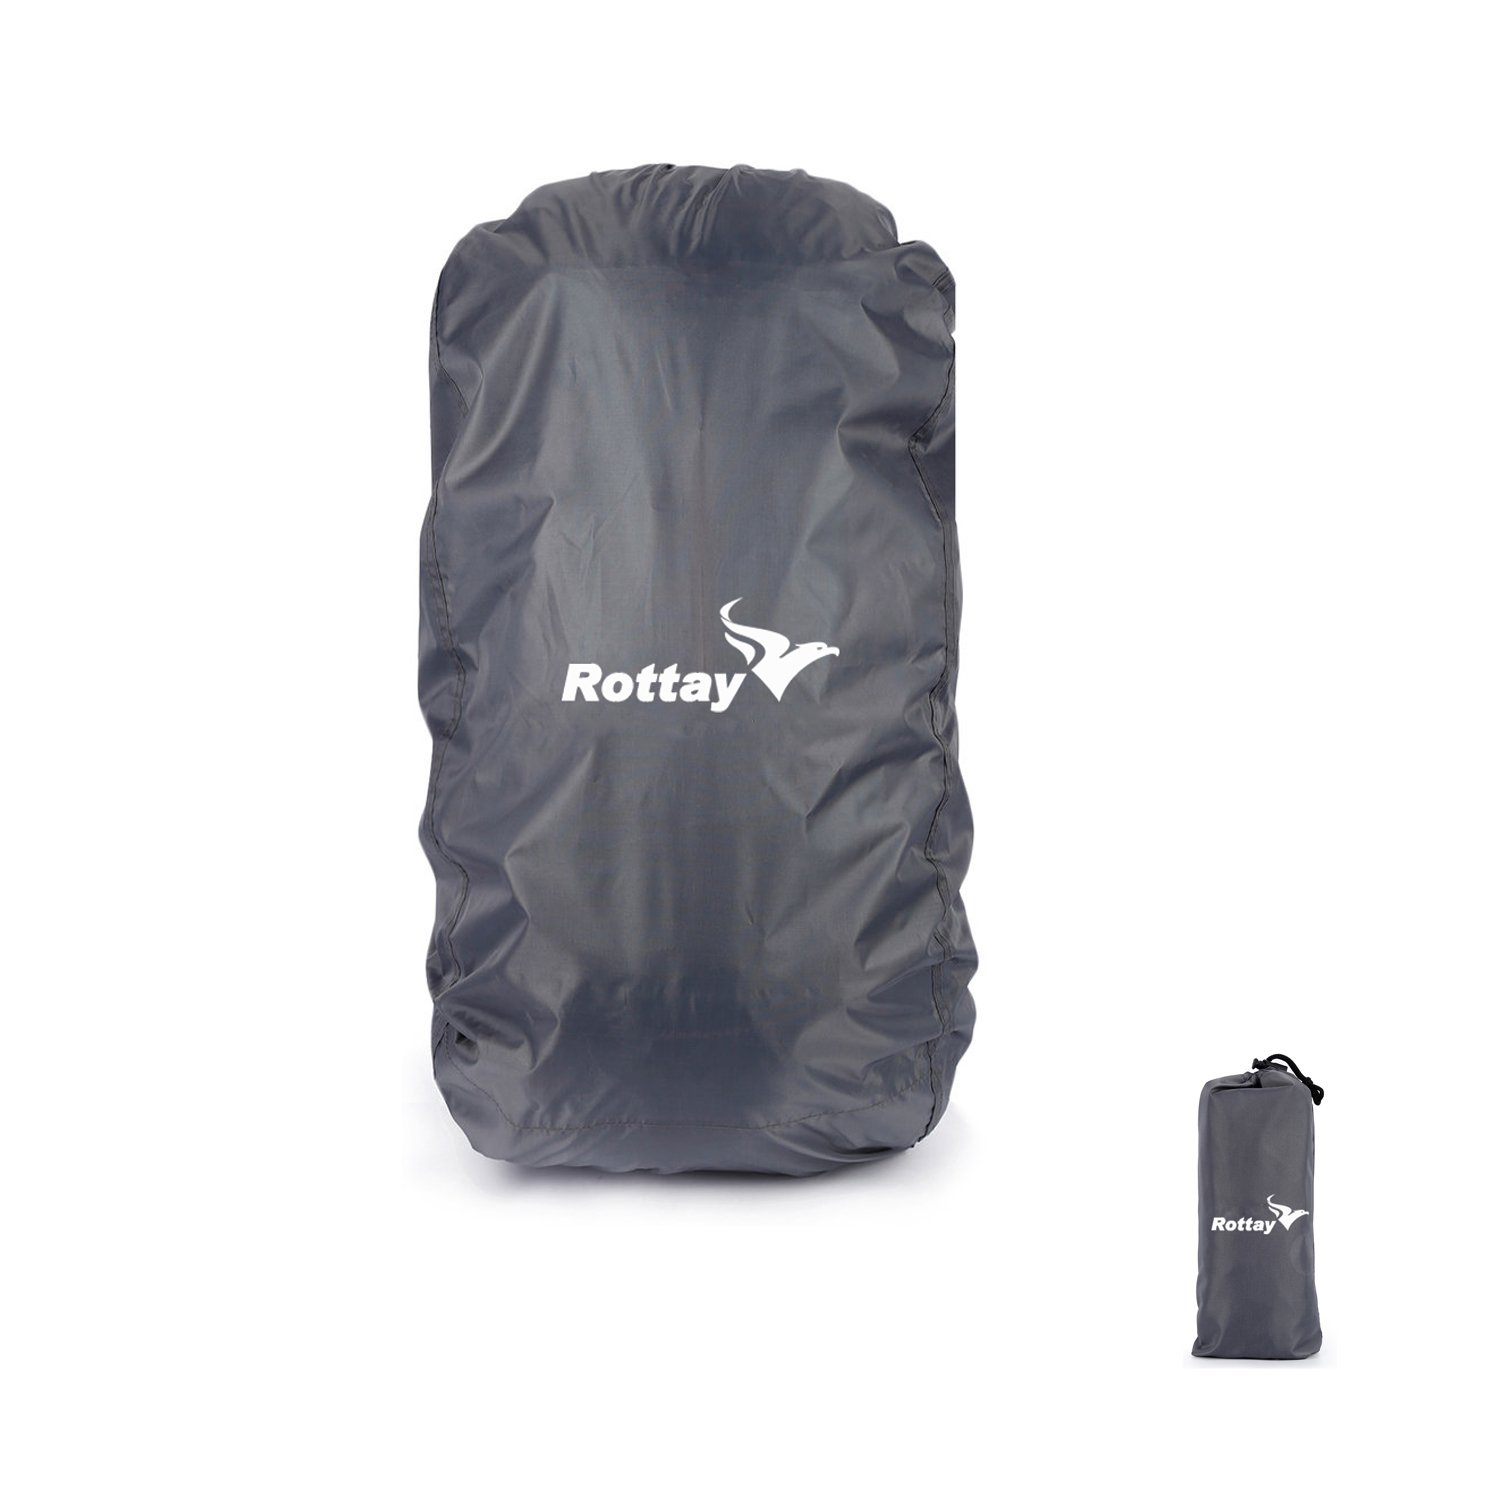 Waterproof Backpack Cover, Rottay Backpack Rain Covers(40L, 45L, 50L, 55L, 60L) for Hiking/Camping/Climbing/ Cycling